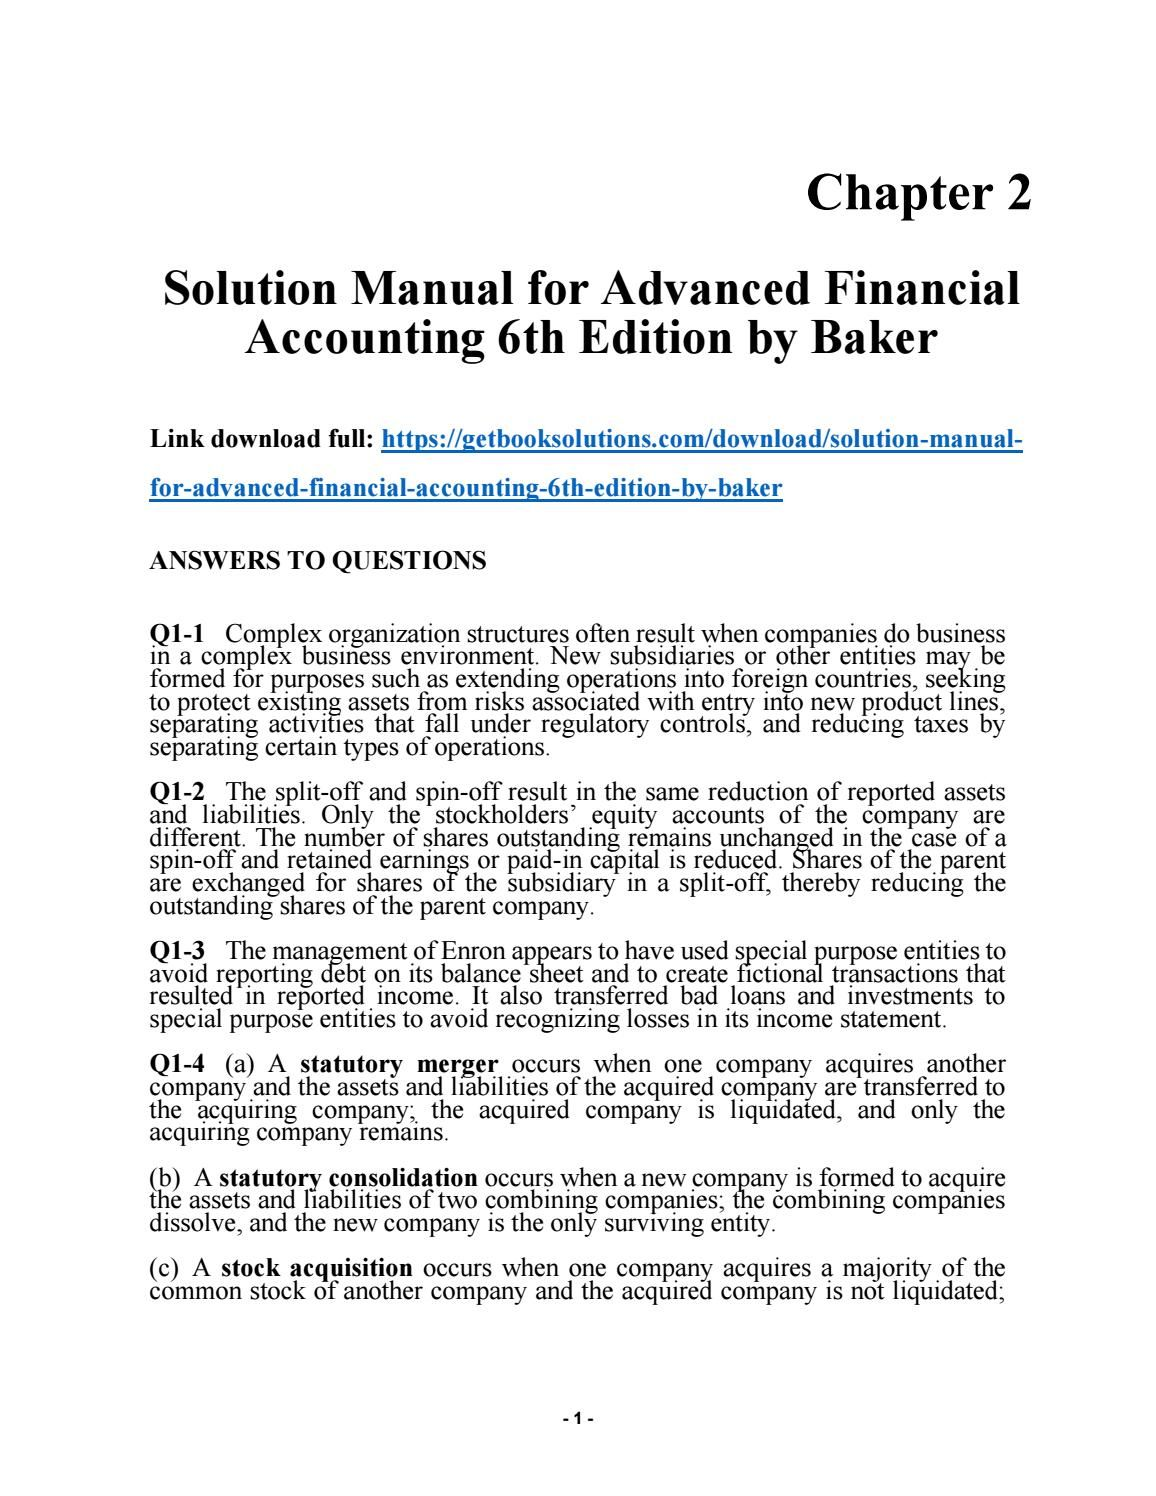 Solution manual for advanced financial accounting 6th edition by baker Financial  Accounting, Manual, Textbook